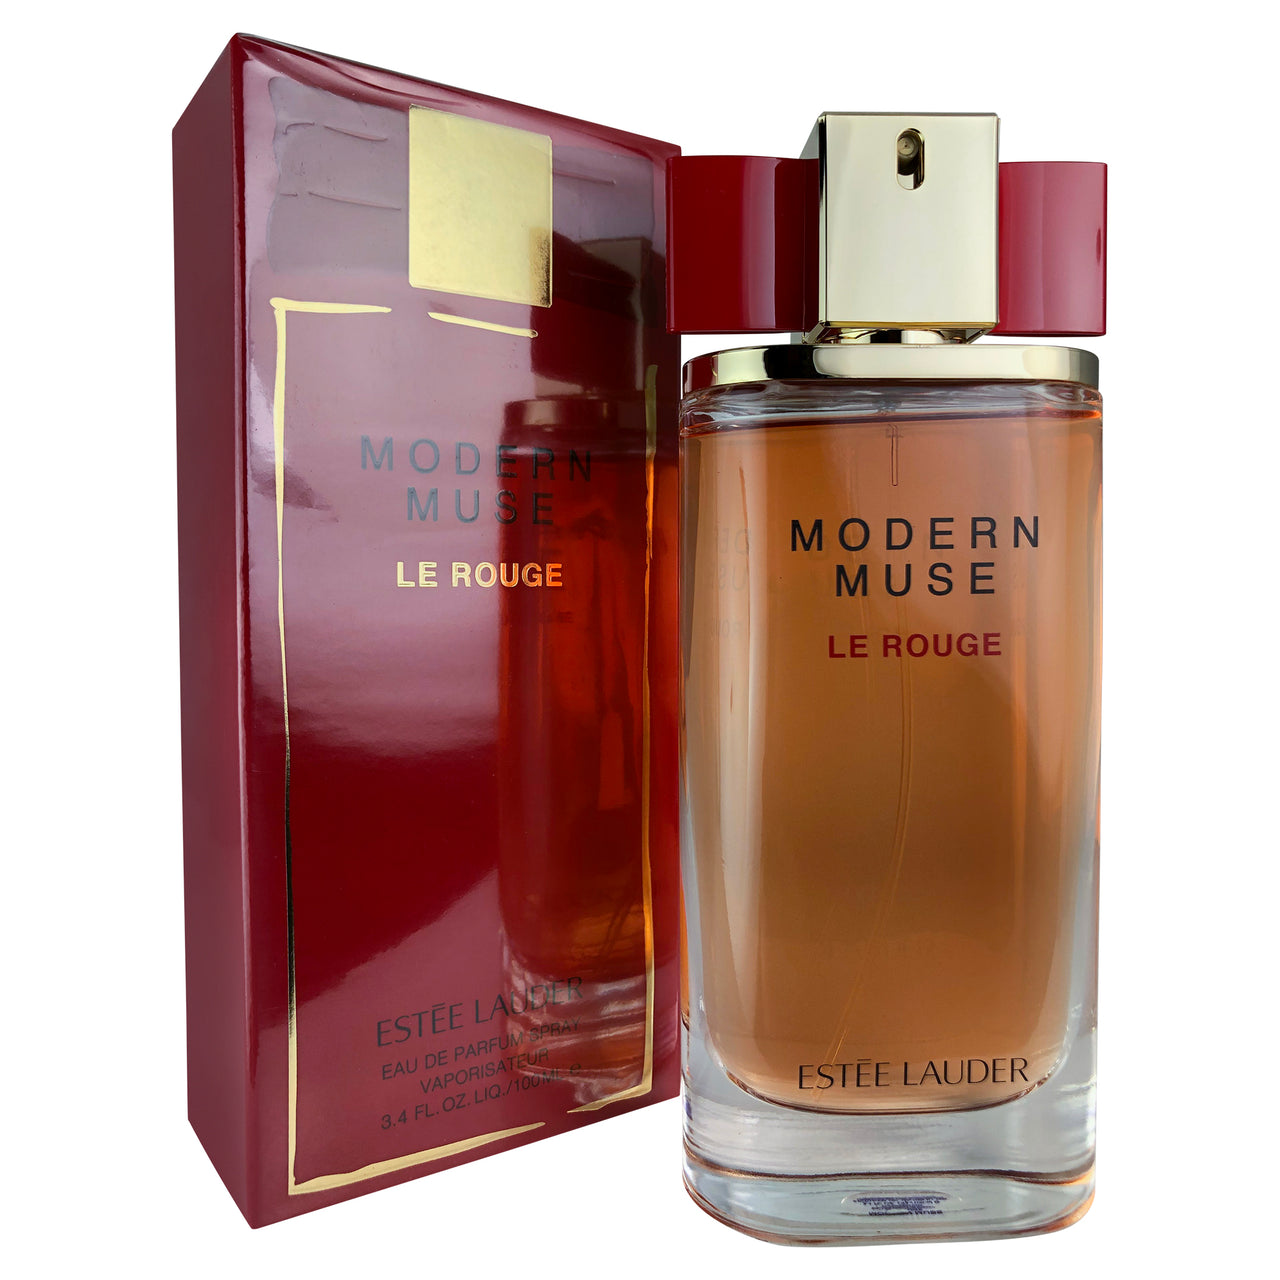 Modern Muse For Women By Estee Lauder 3.4 Oz Eau De Parfum Spray